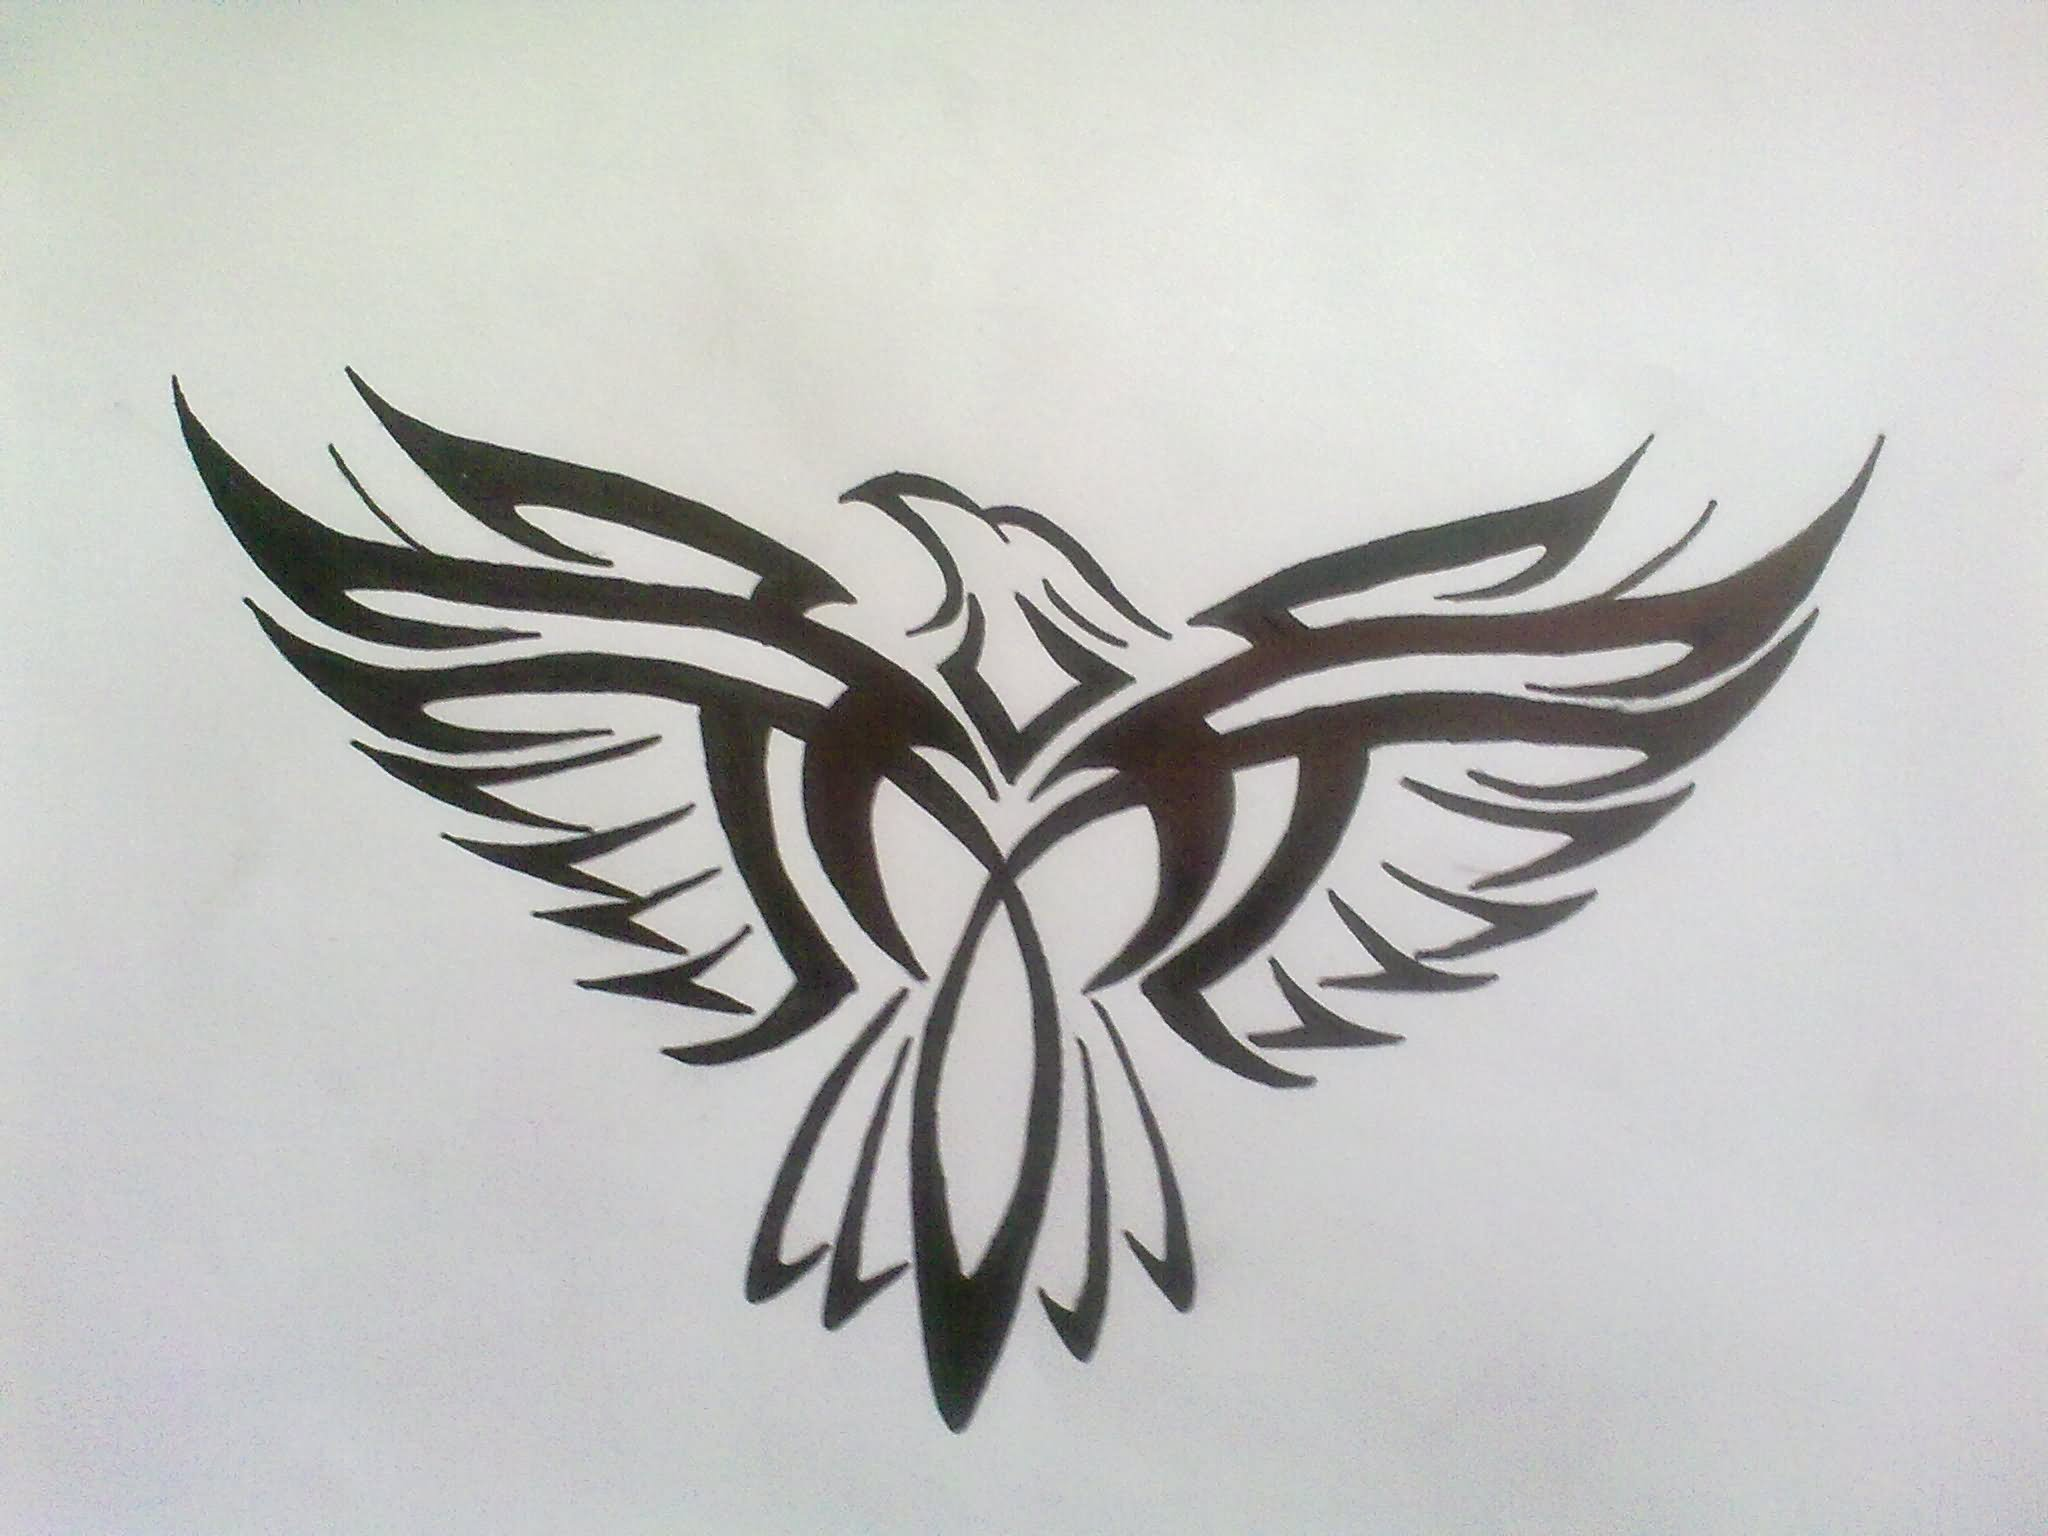 52+ Amazing Tribal Eagle Tattoos & Designs With Meanings